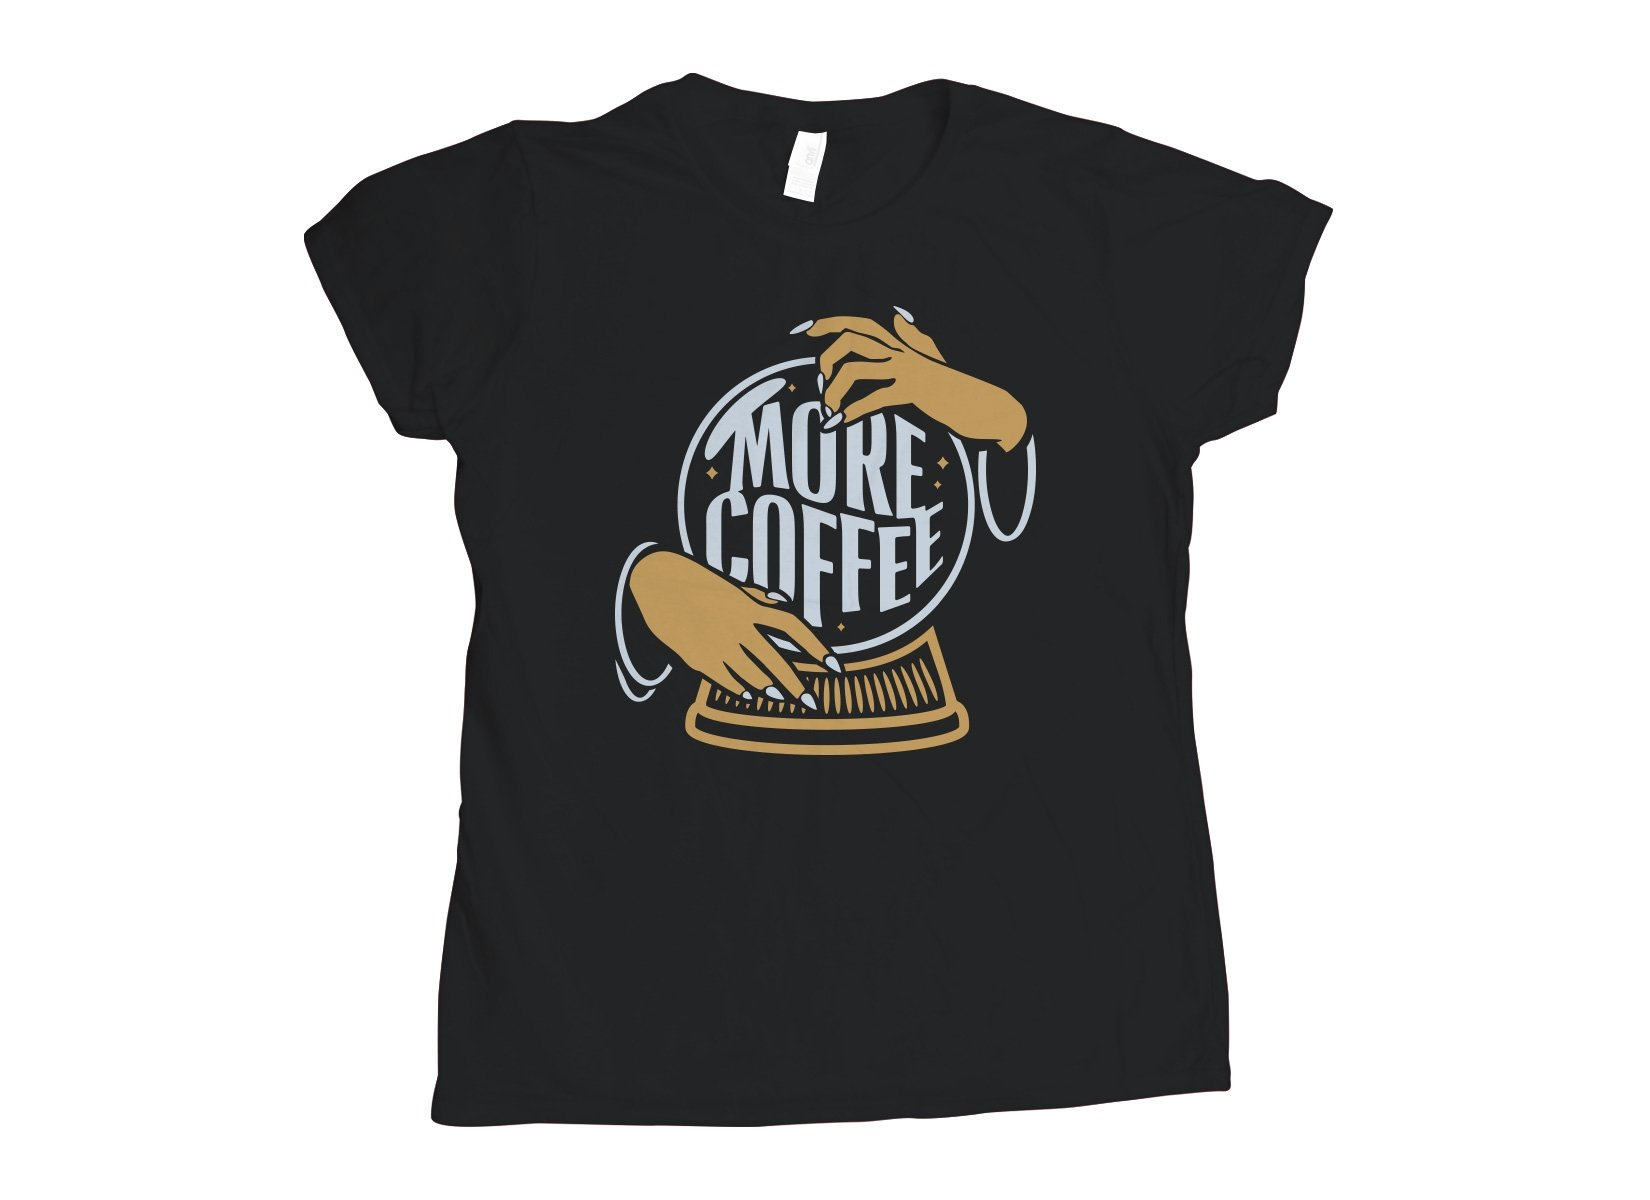 More Coffee on Womens T-Shirt